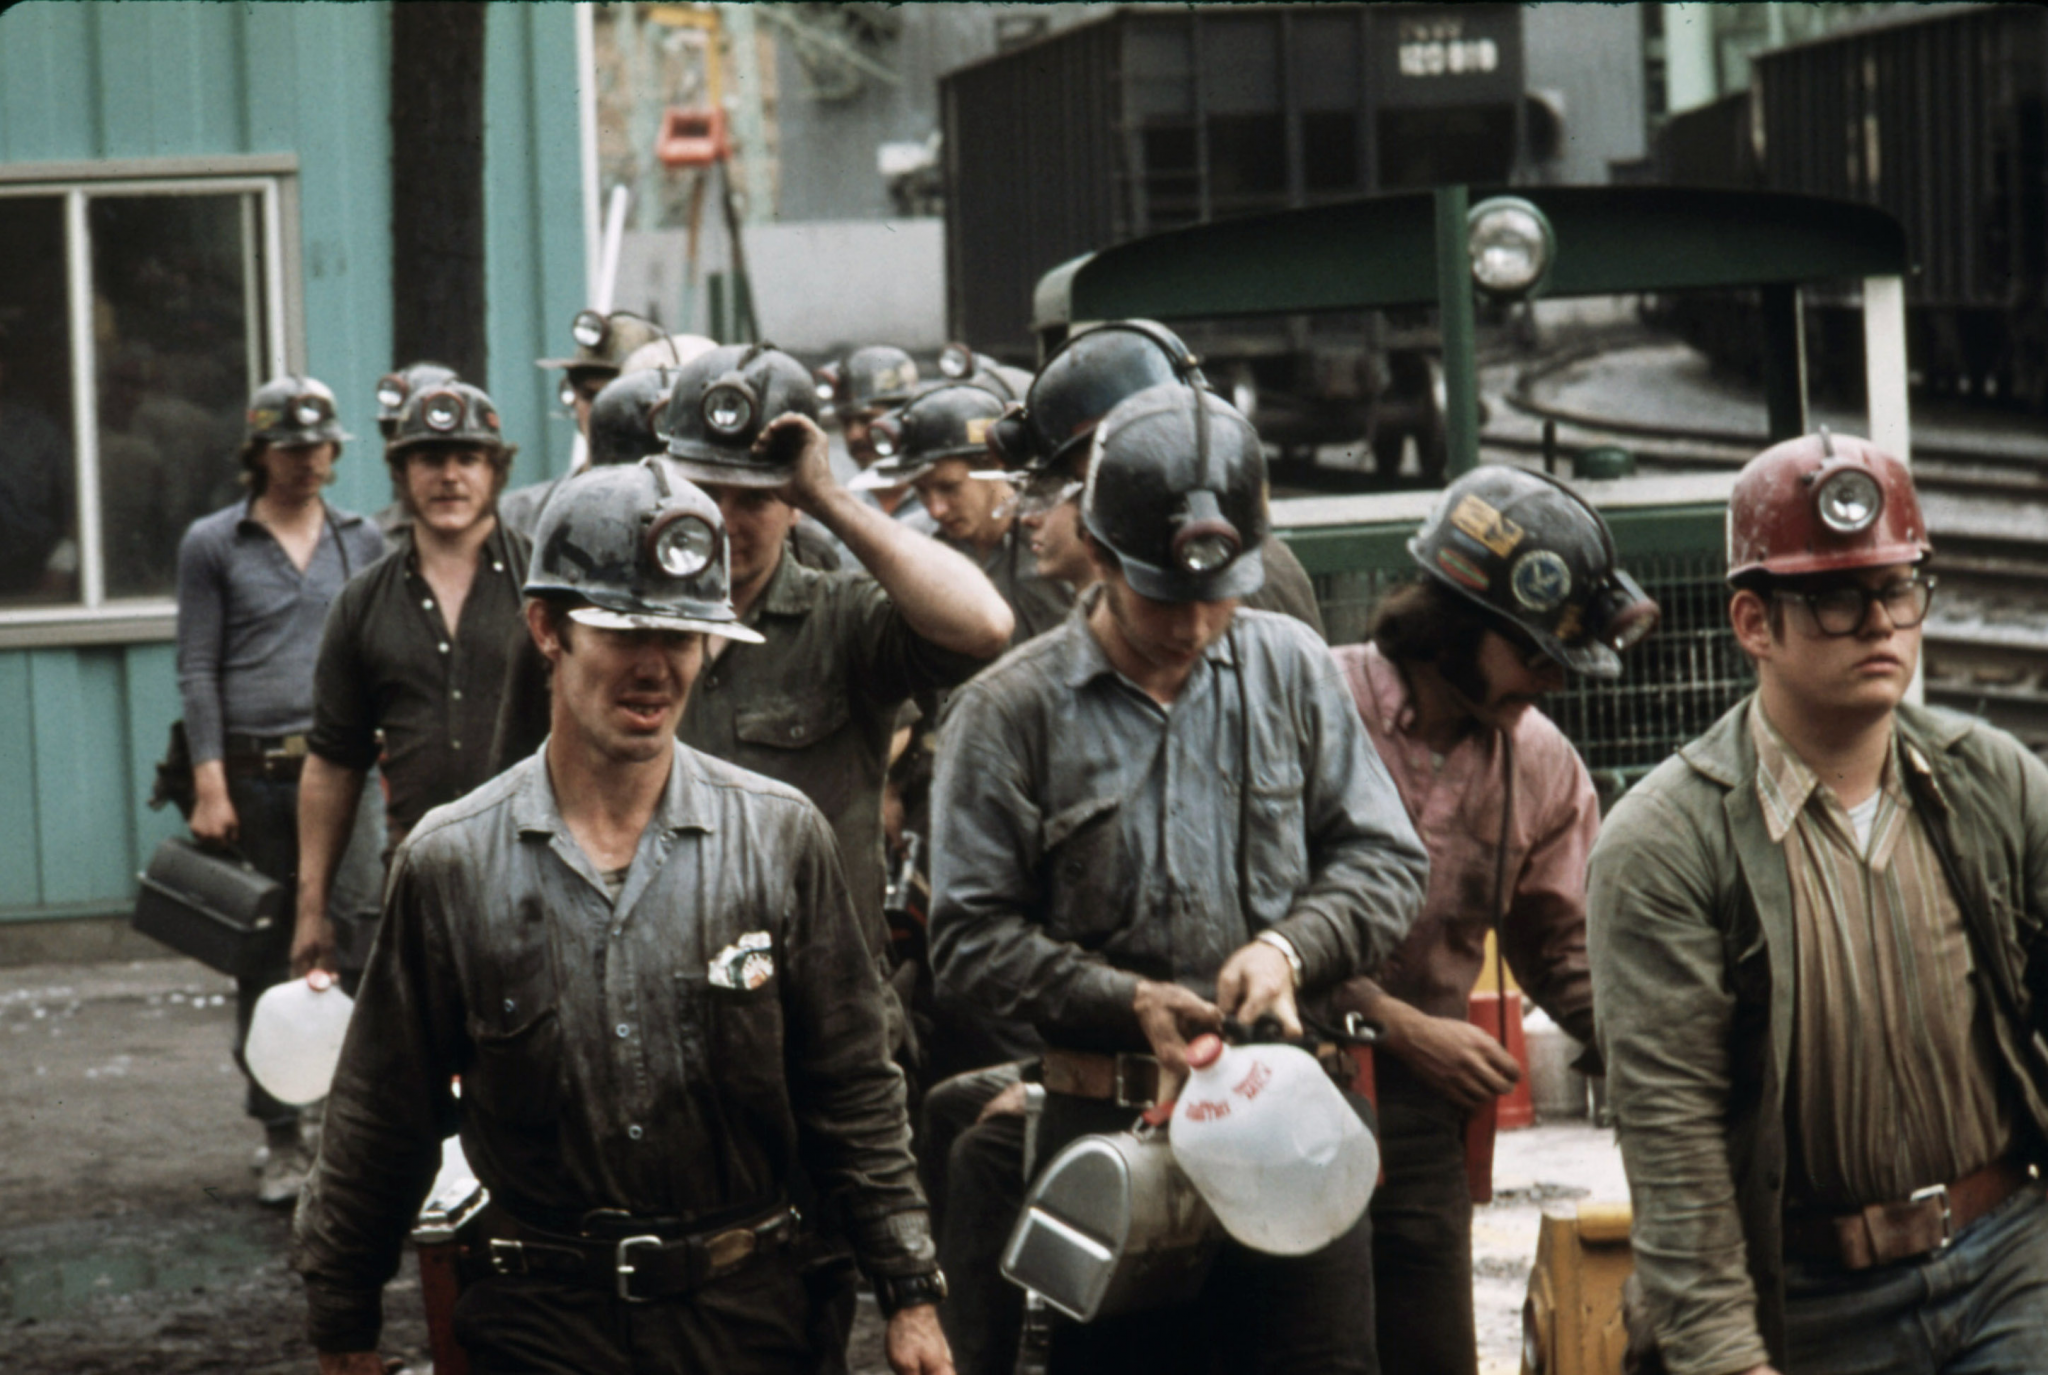 Job Satisfaction: What factors in the Coal Mining Industry will lead